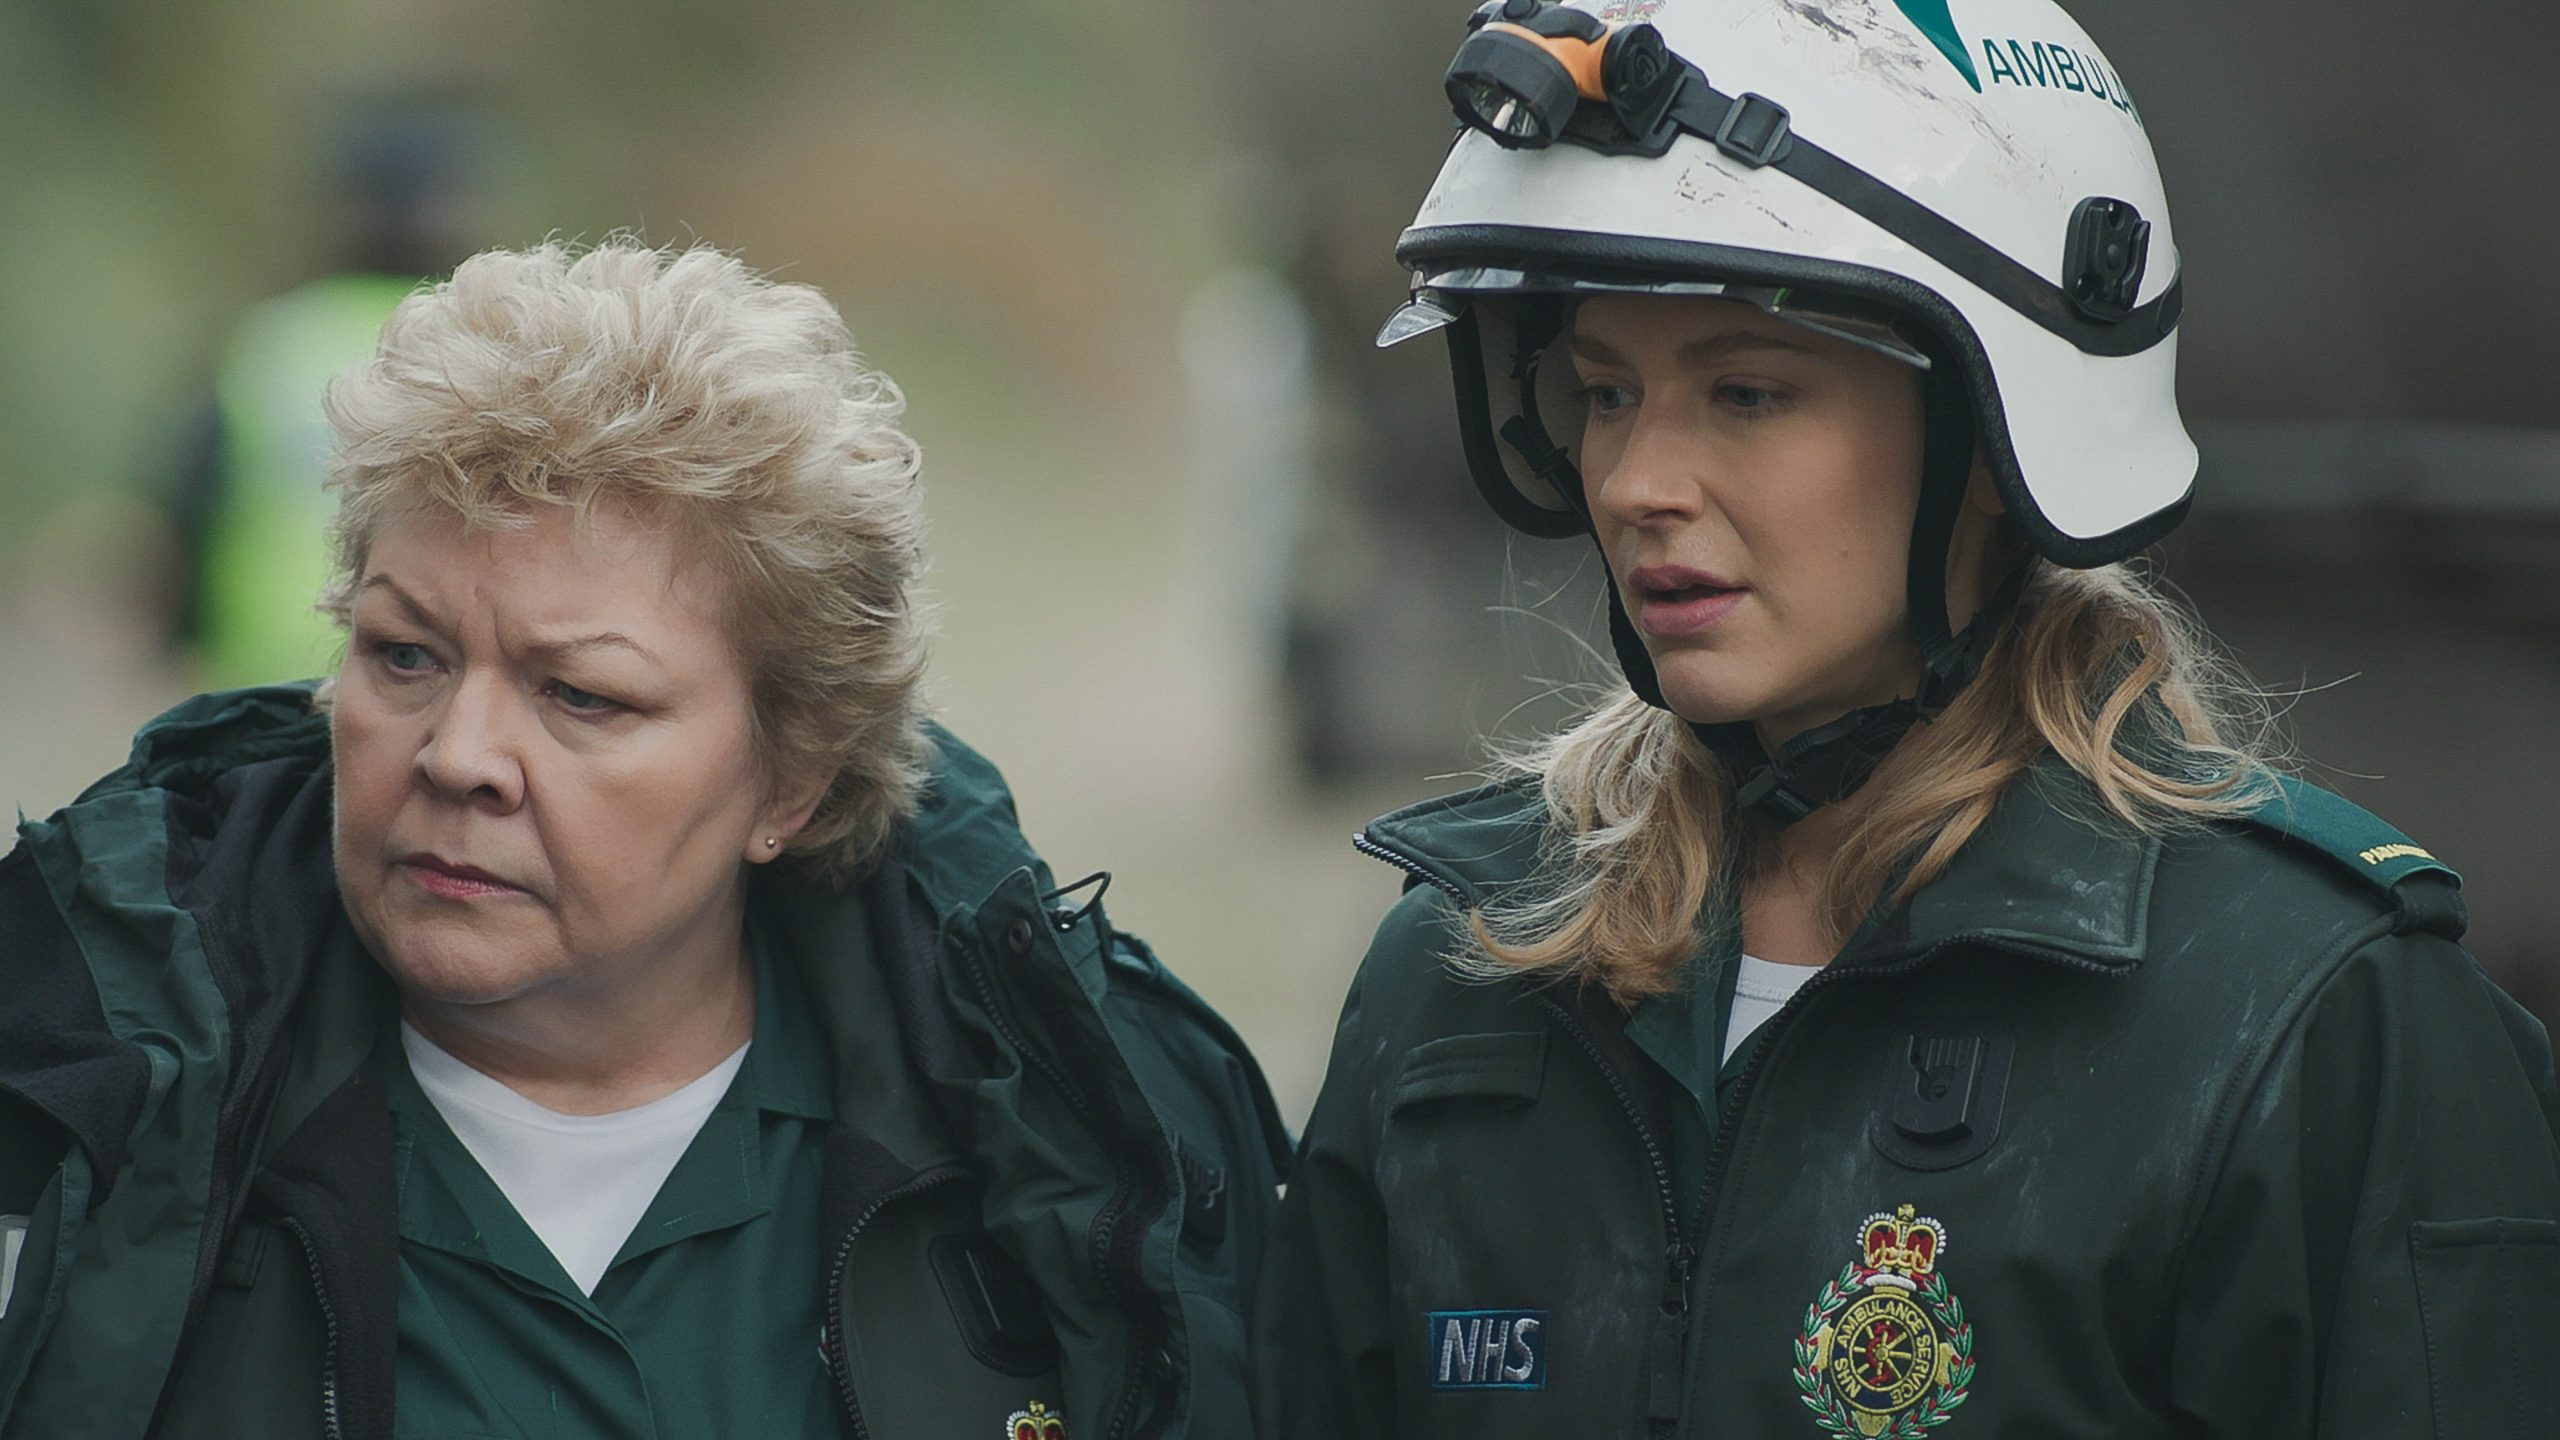 BBC responds to complaints over 'inappropriate' Casualty episode after it was axed